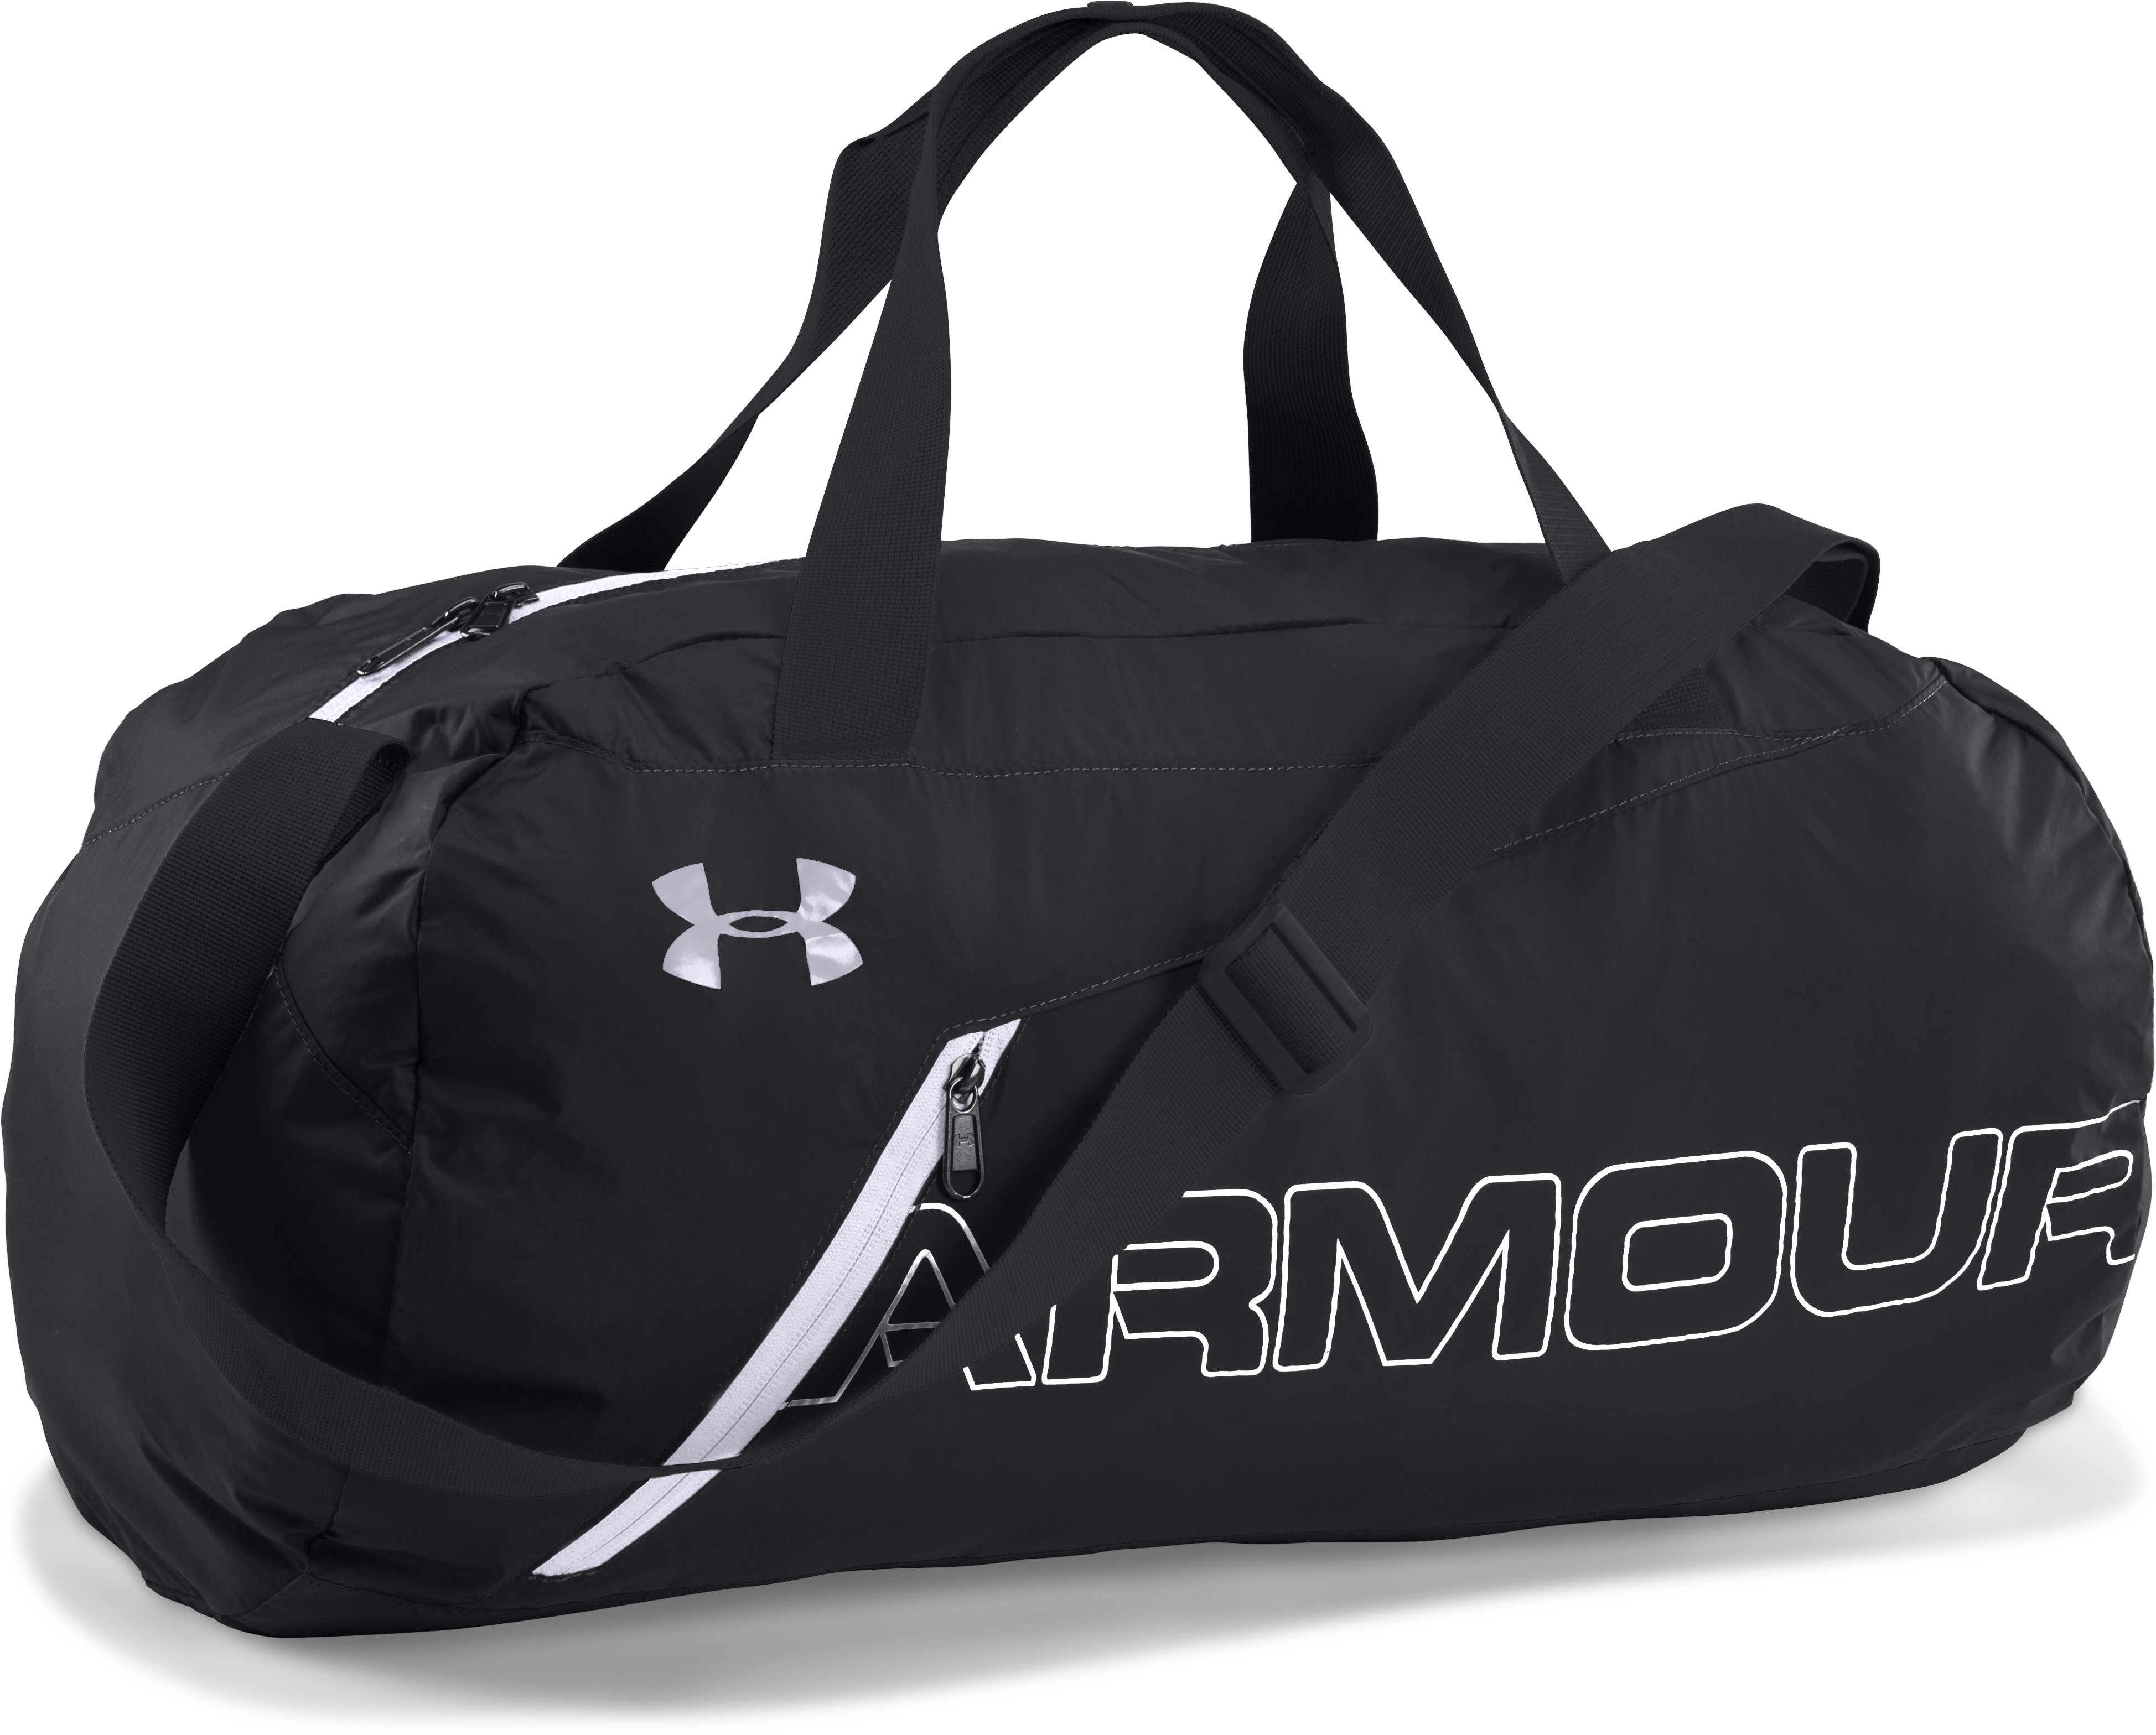 Under Armour This Is It Gym Bag fsN2LnER6E